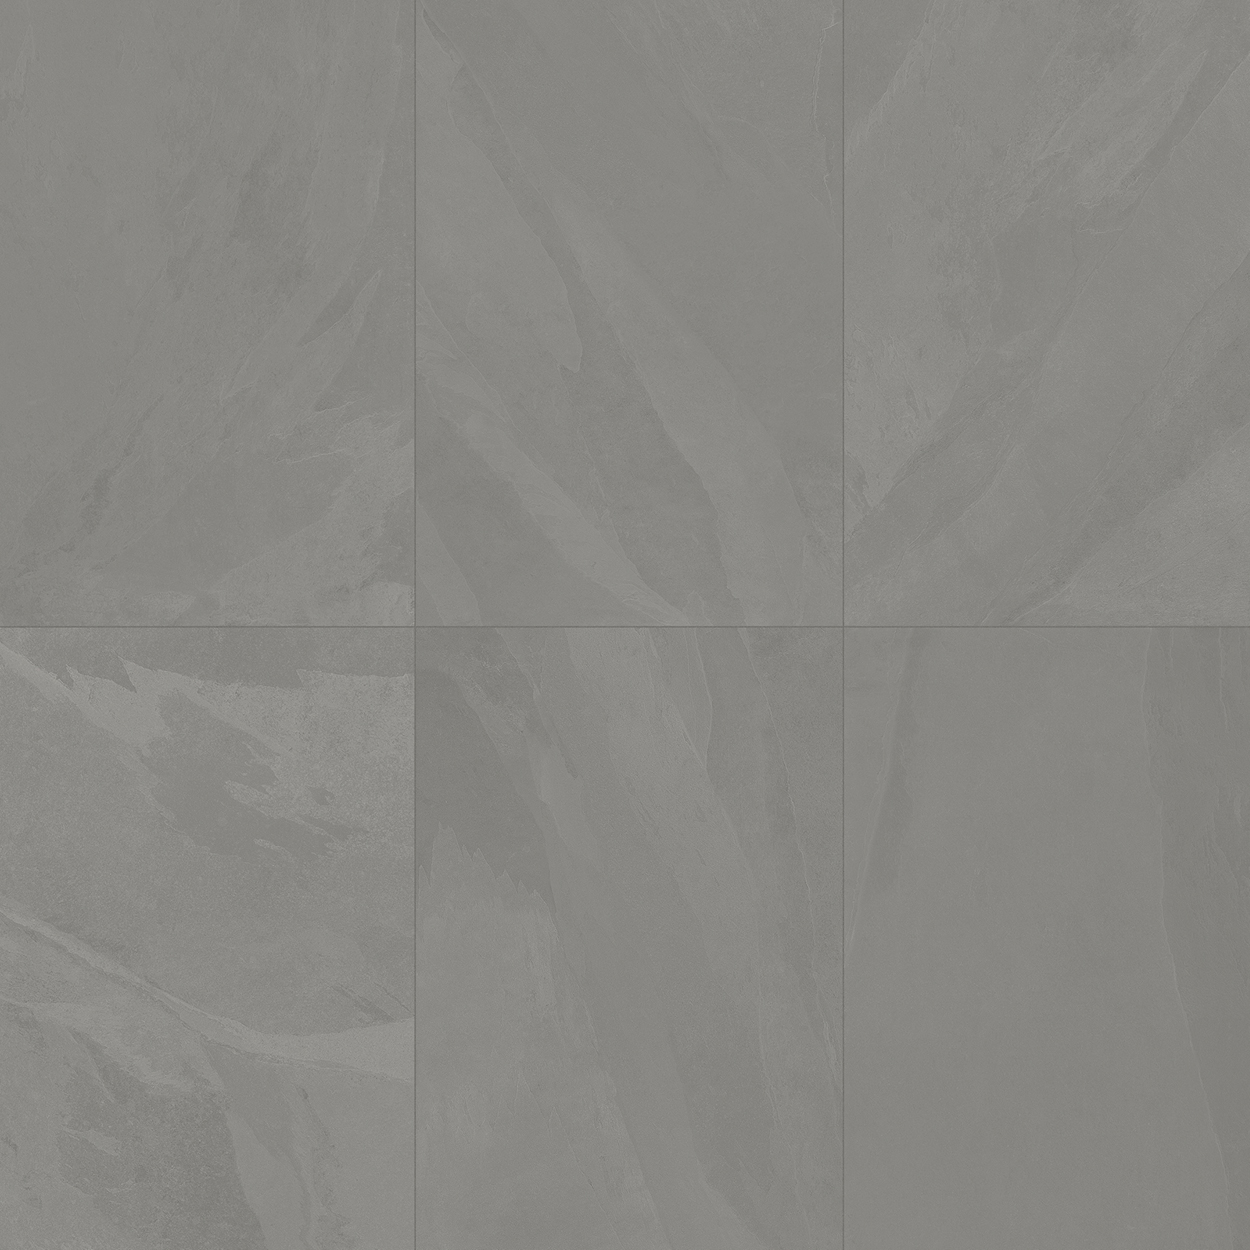 24 x 48 Brazilian Slate Silk Grey Rectified Porcelain tile